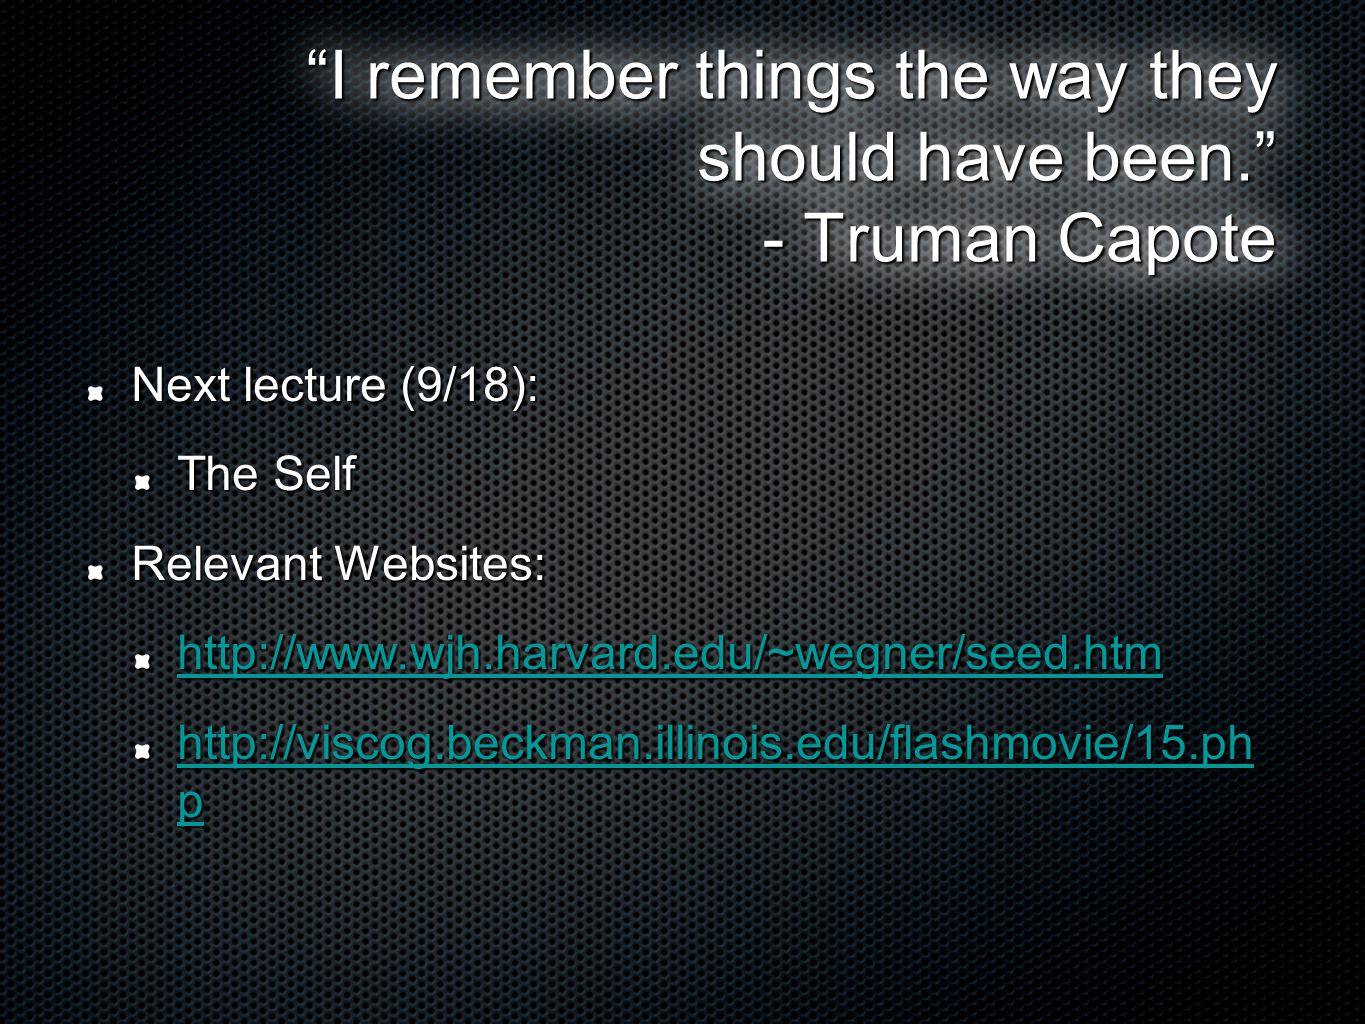 I remember things the way they should have been. - Truman Capote Next lecture (9/18): The Self Relevant Websites: http://www.wjh.harvard.edu/~wegner/seed.htm http://viscog.beckman.illinois.edu/flashmovie/15.ph p http://viscog.beckman.illinois.edu/flashmovie/15.ph p